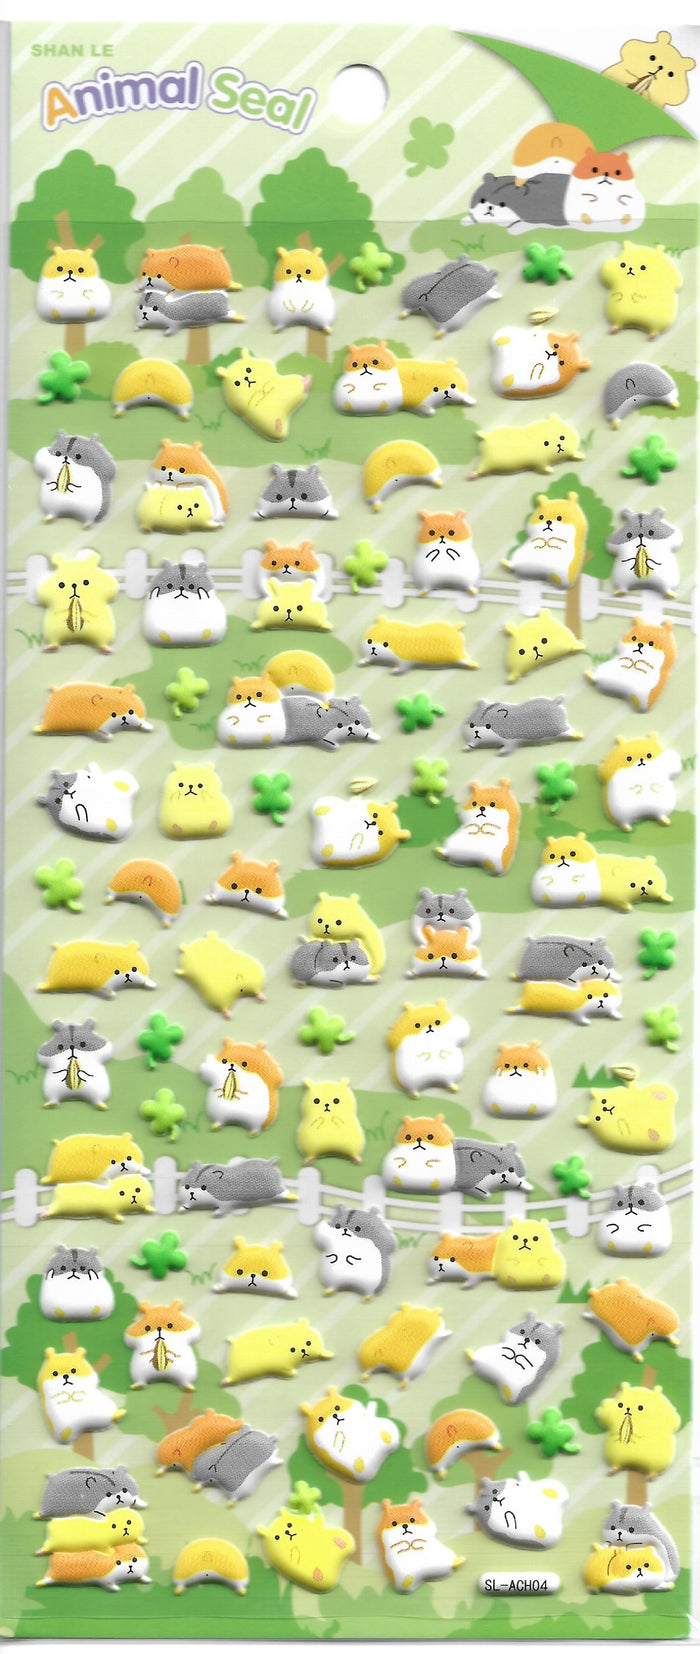 Animal Seal Hamsters & Friends Puffy Sticker Sheet